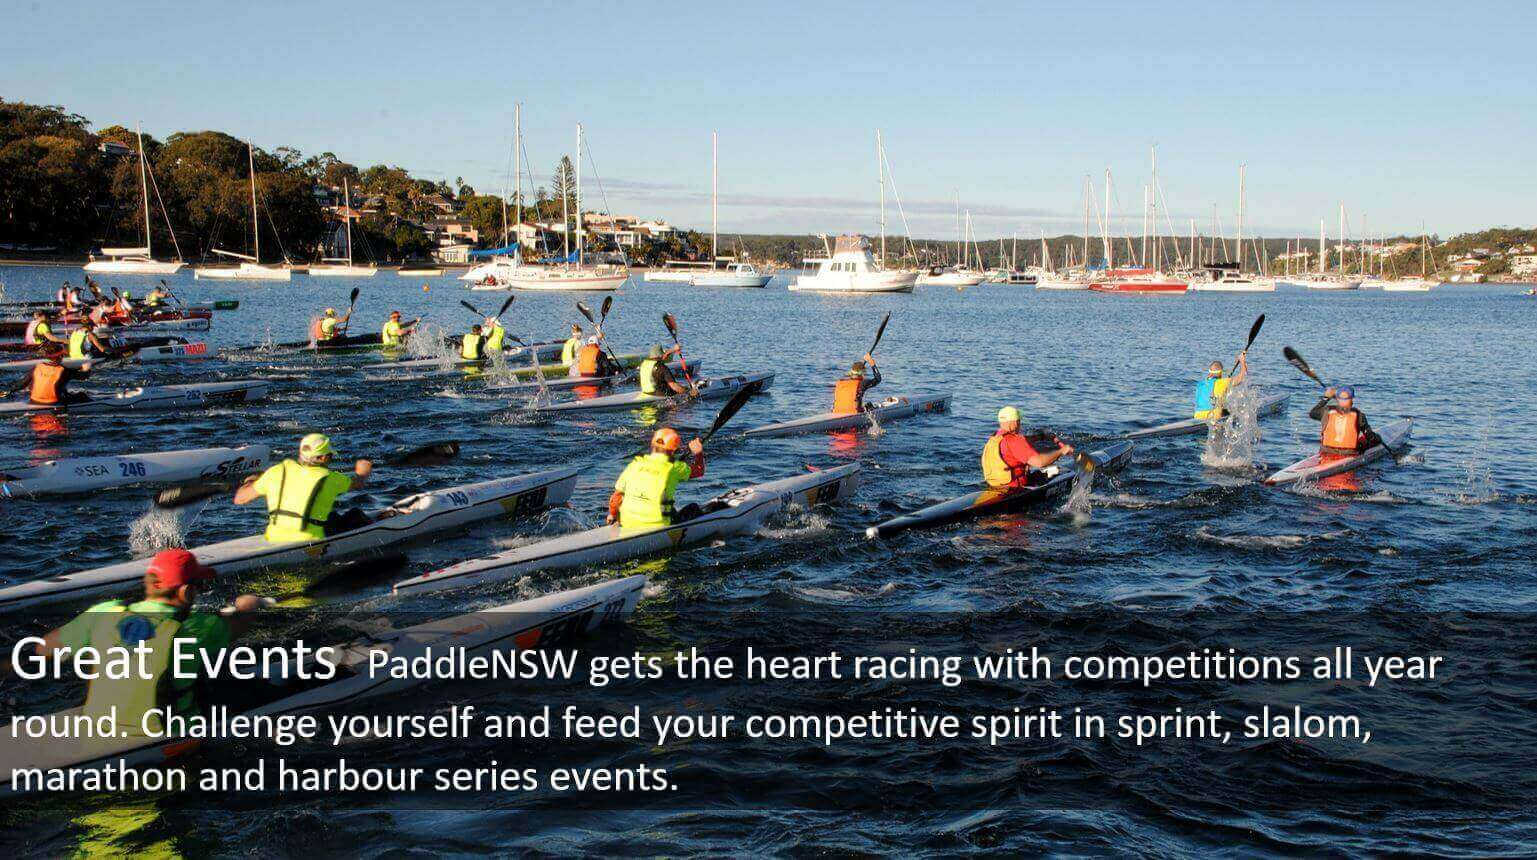 Mass start of ski paddlers in harbour series race, with text on Great Events